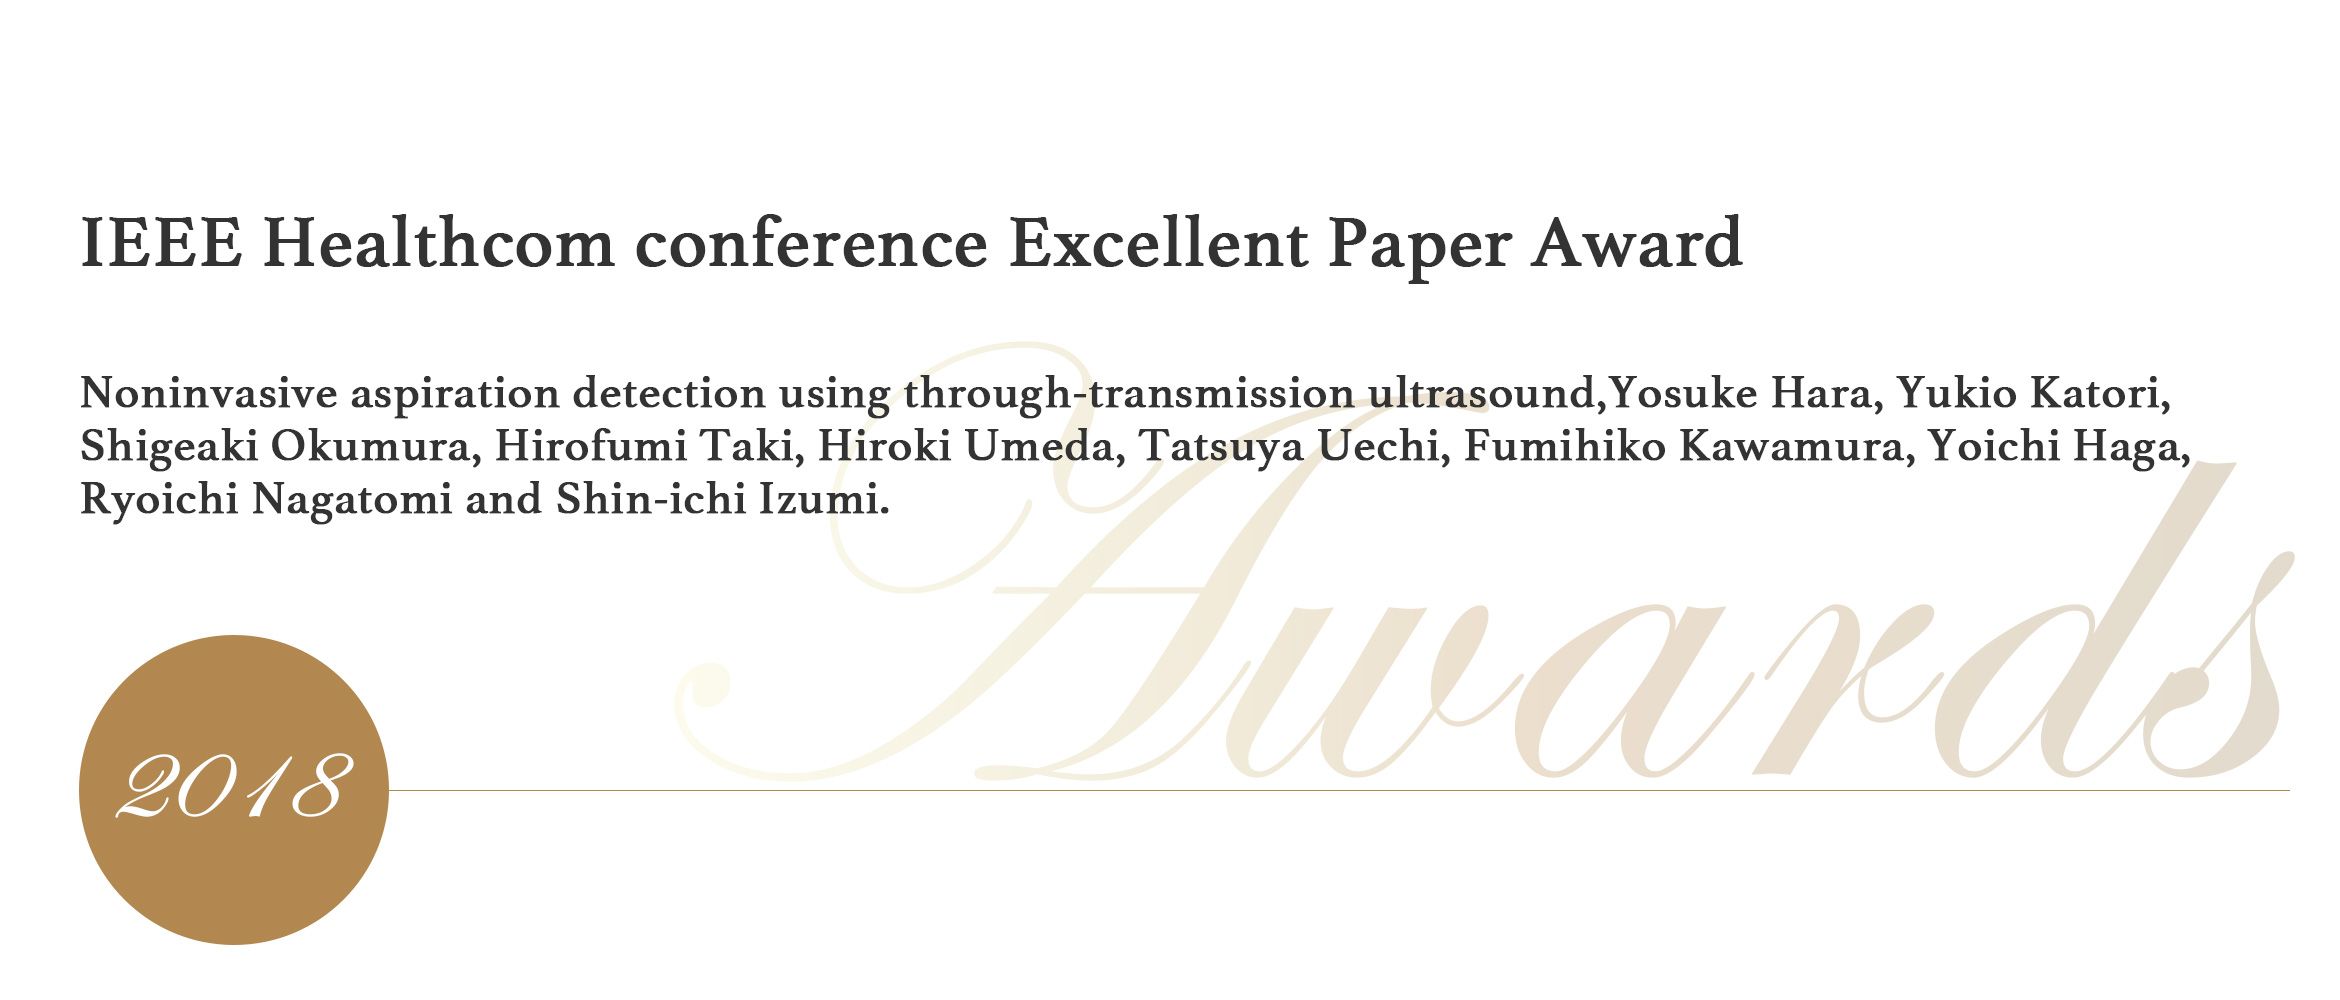 IEEE Healthcom conference Excellent Paper Award